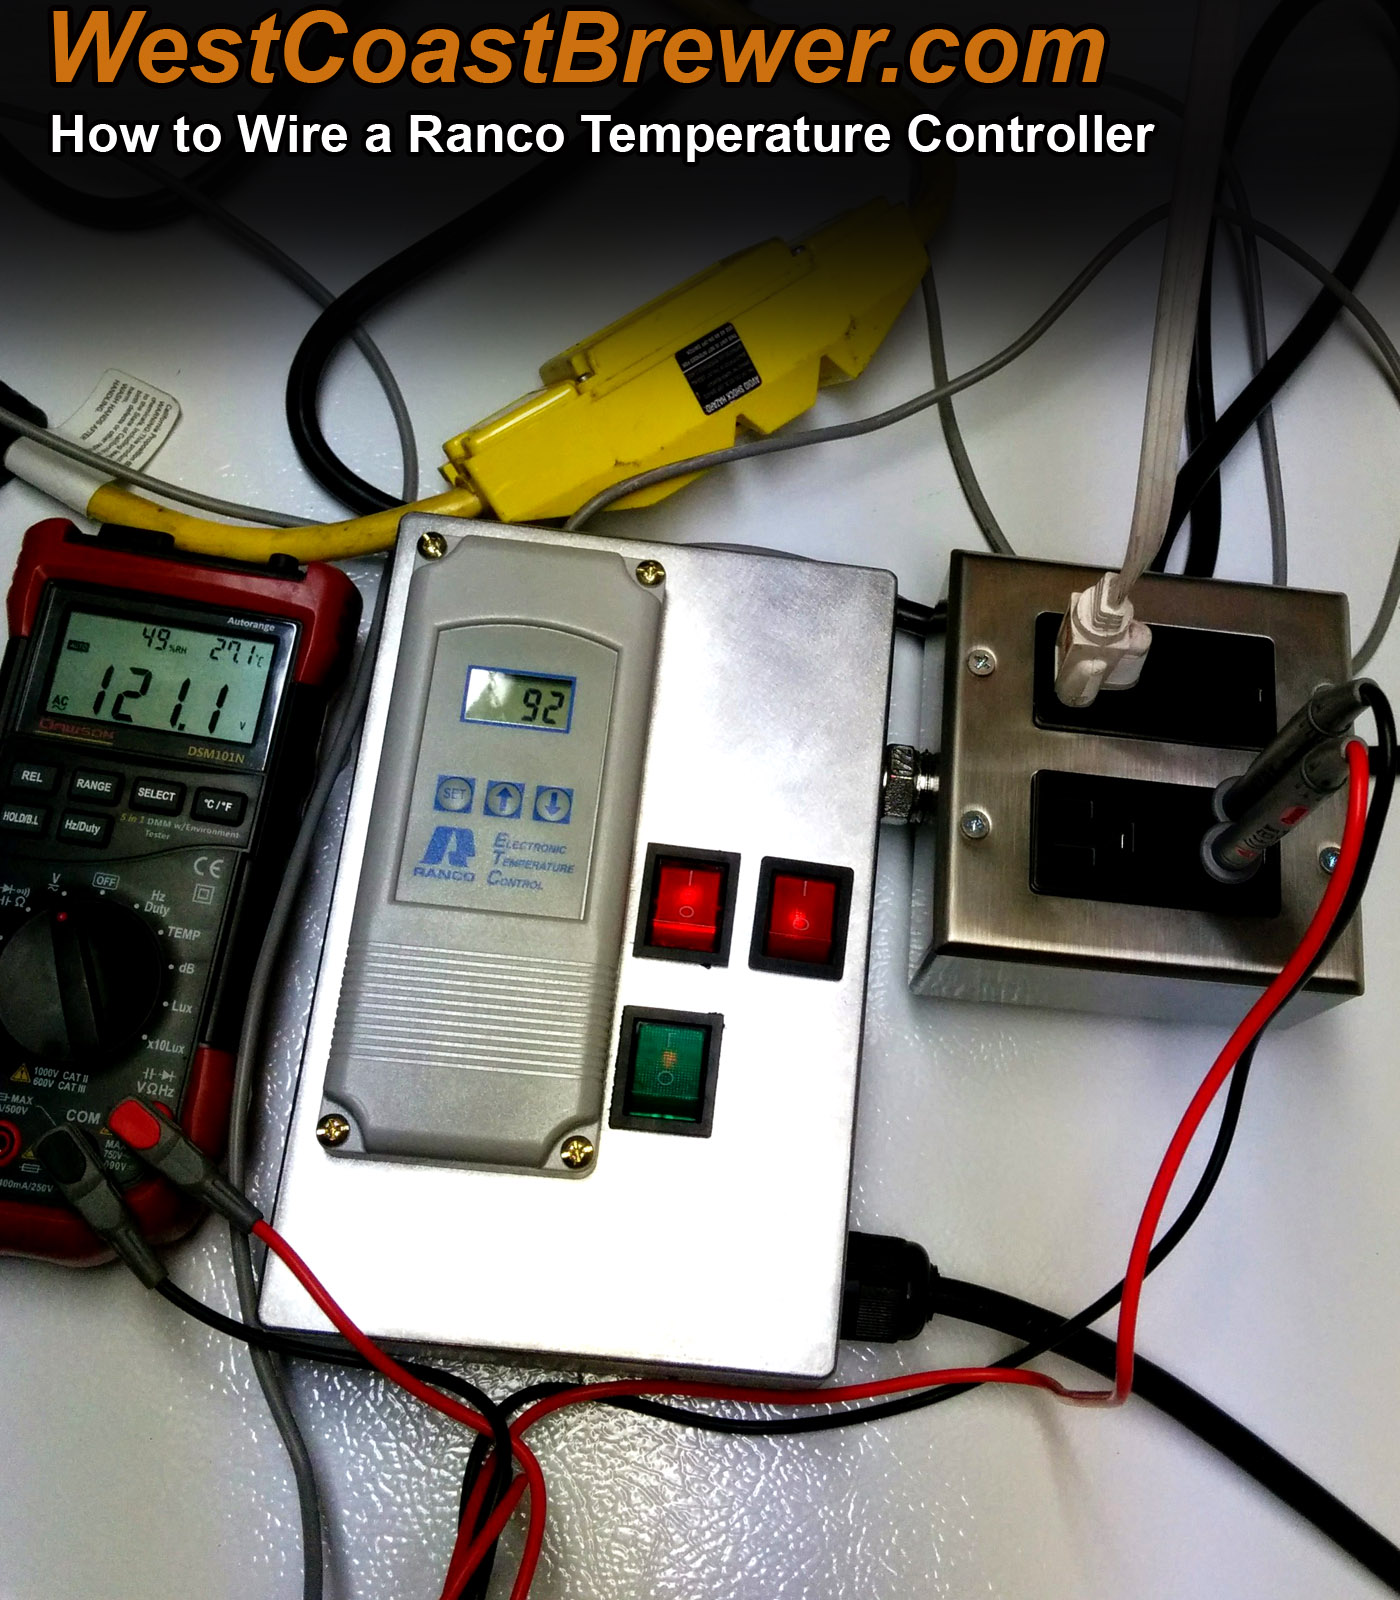 how to wire a ranco digital temperature controller 120v rh westcoastbrewer com Ranco 111000 Digital Temperature Controller Ranco 111000 Digital Temperature Controller